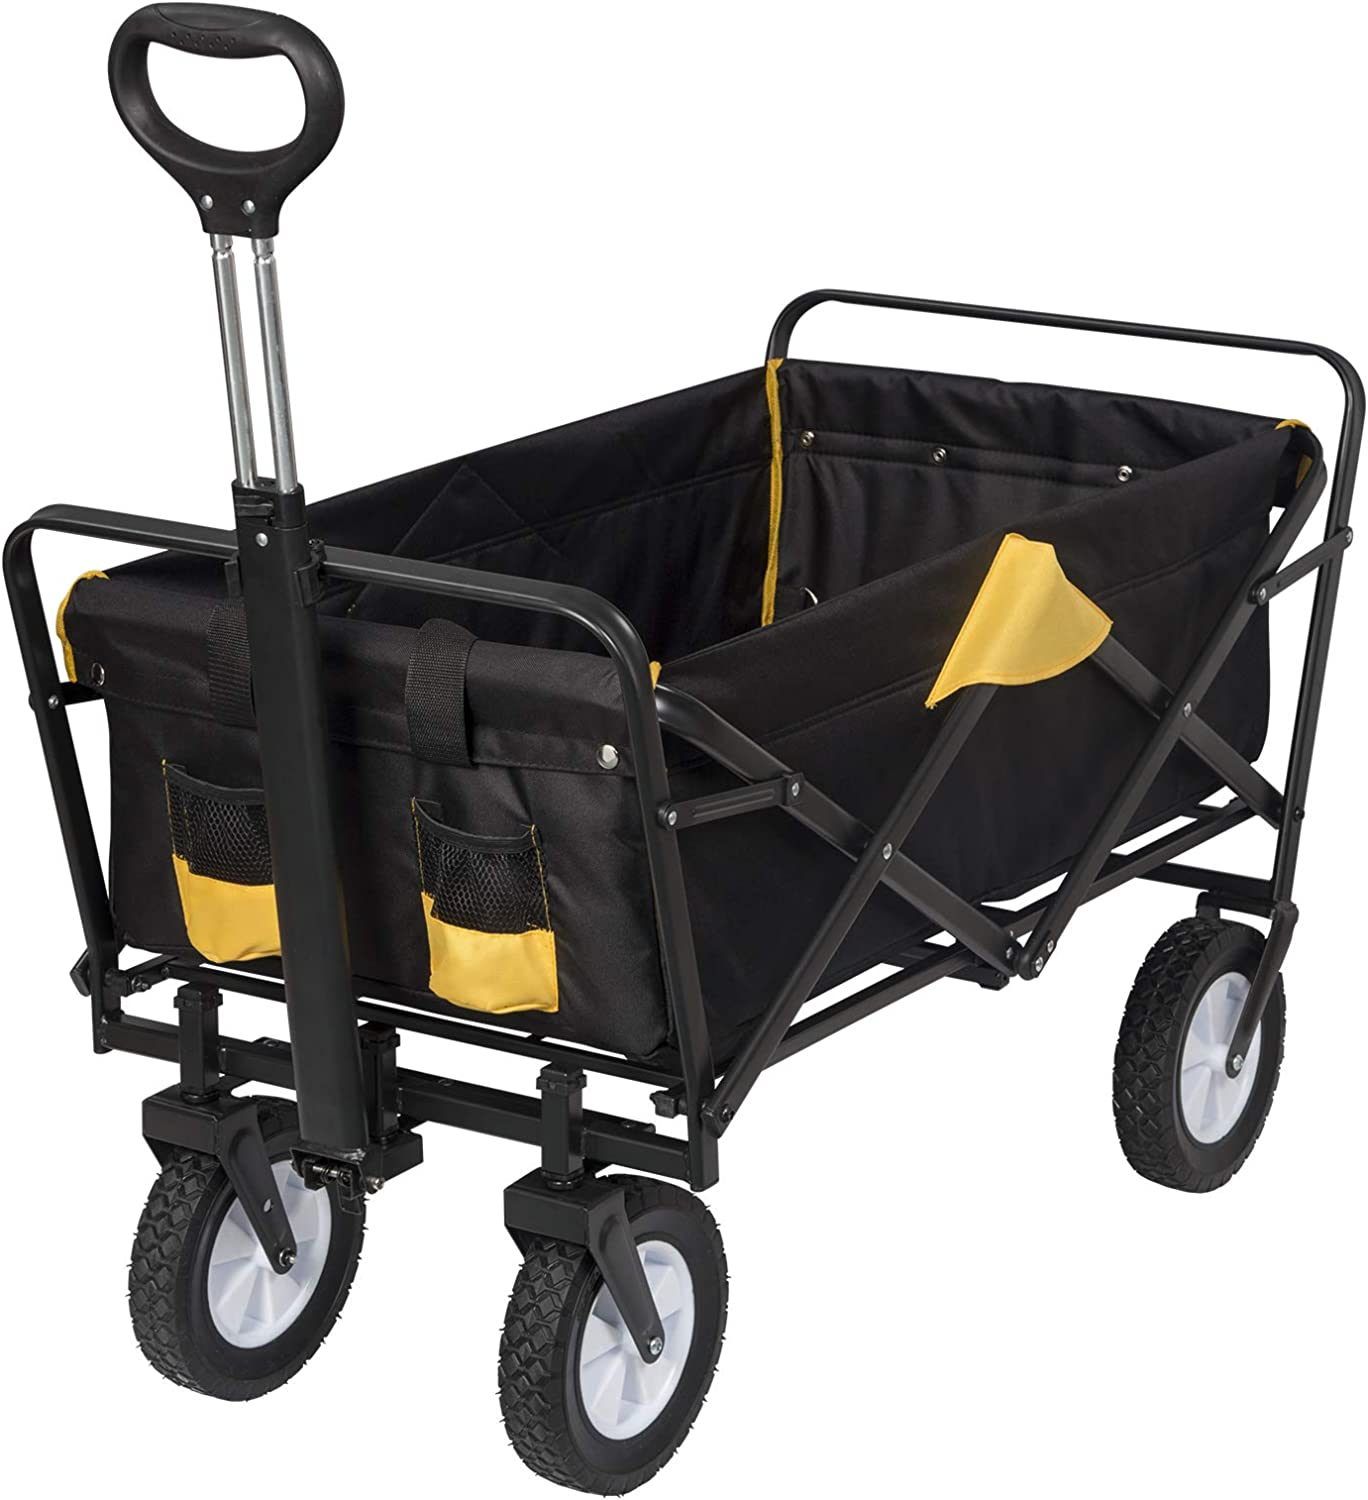 EUGAD Foldable Garden Trolley Cart with 4 Wheels Collapsible Wagon Hand Truck for Camping Shopping Gardening Festival Anthracite//Yellow